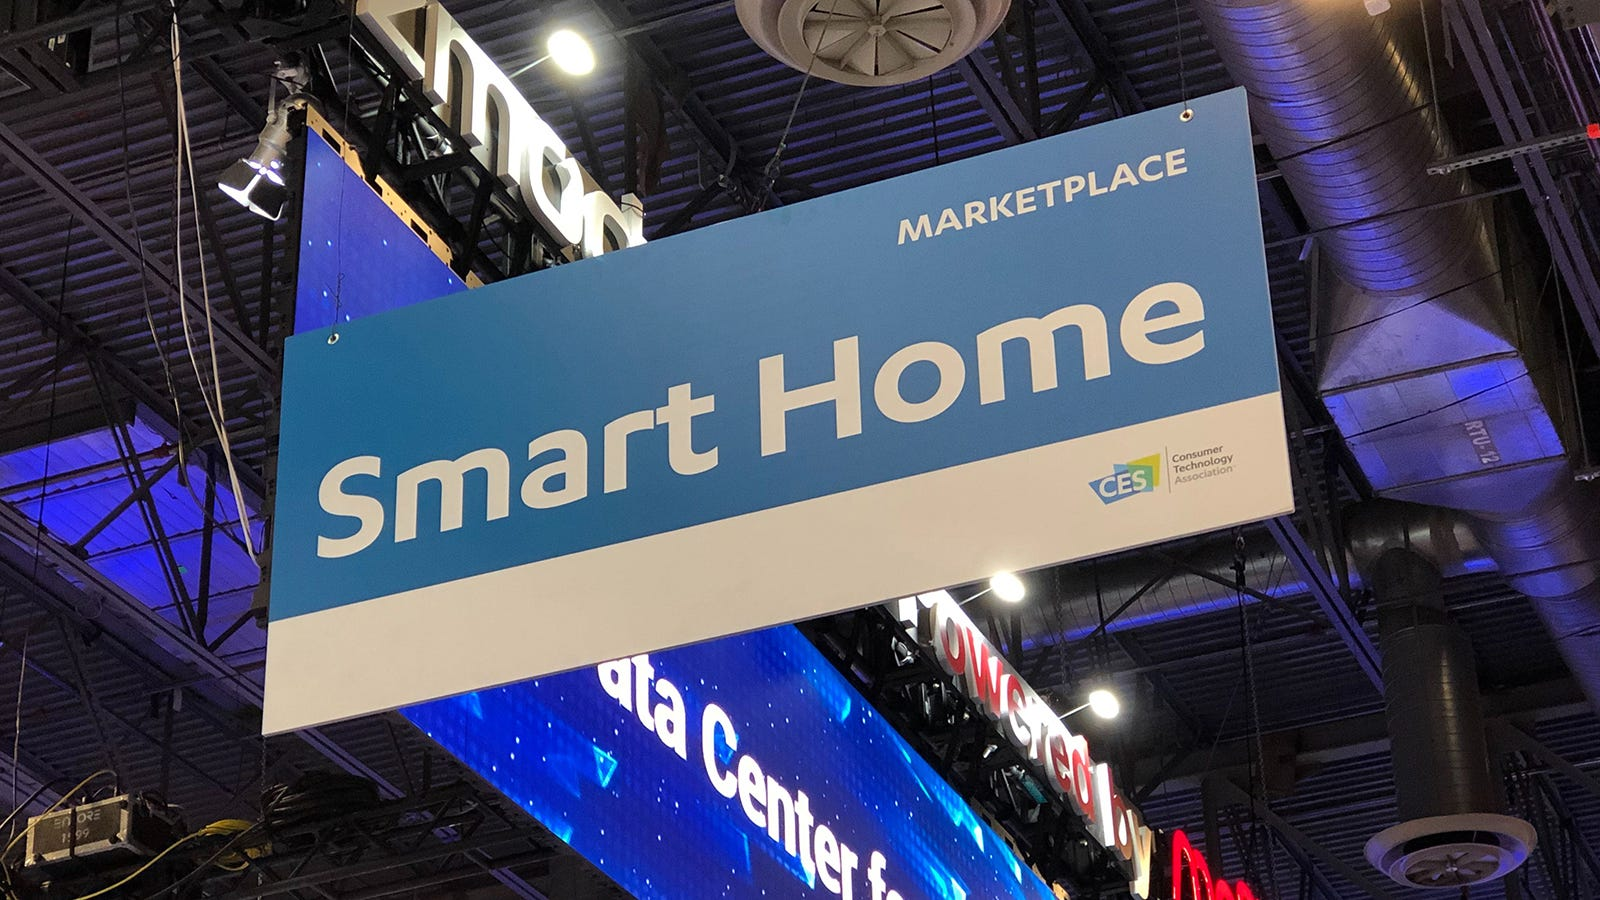 So Much That There S Even An Entire Dedicated E On The Show Floor To Just Smarthome Companies Here Are Best New